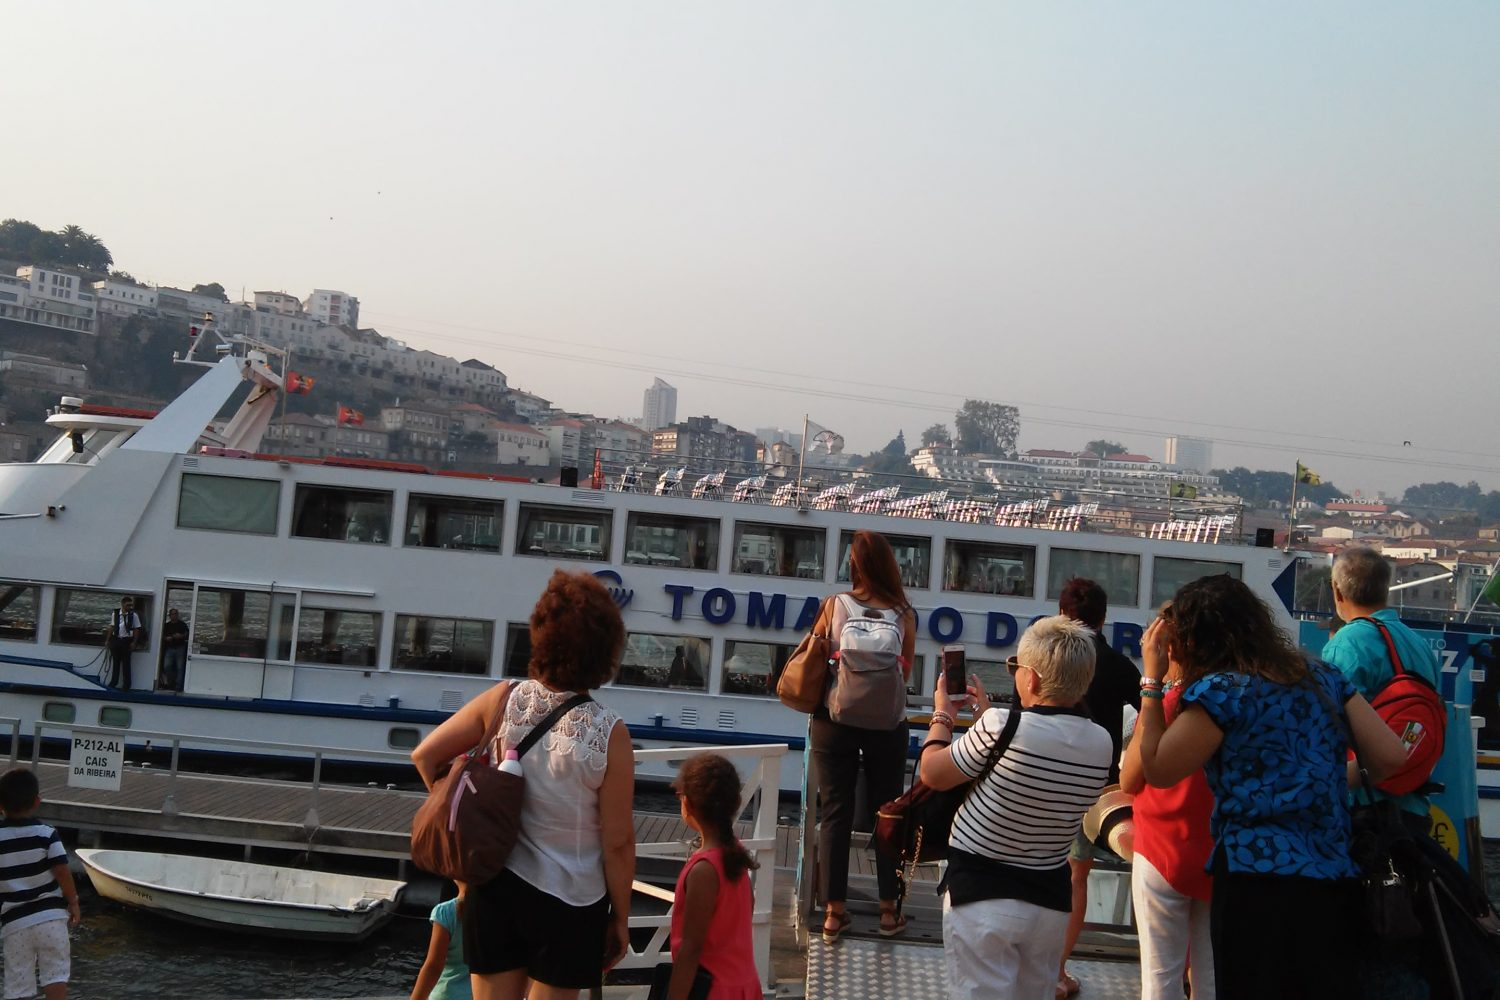 People waiting for a Douro cruise